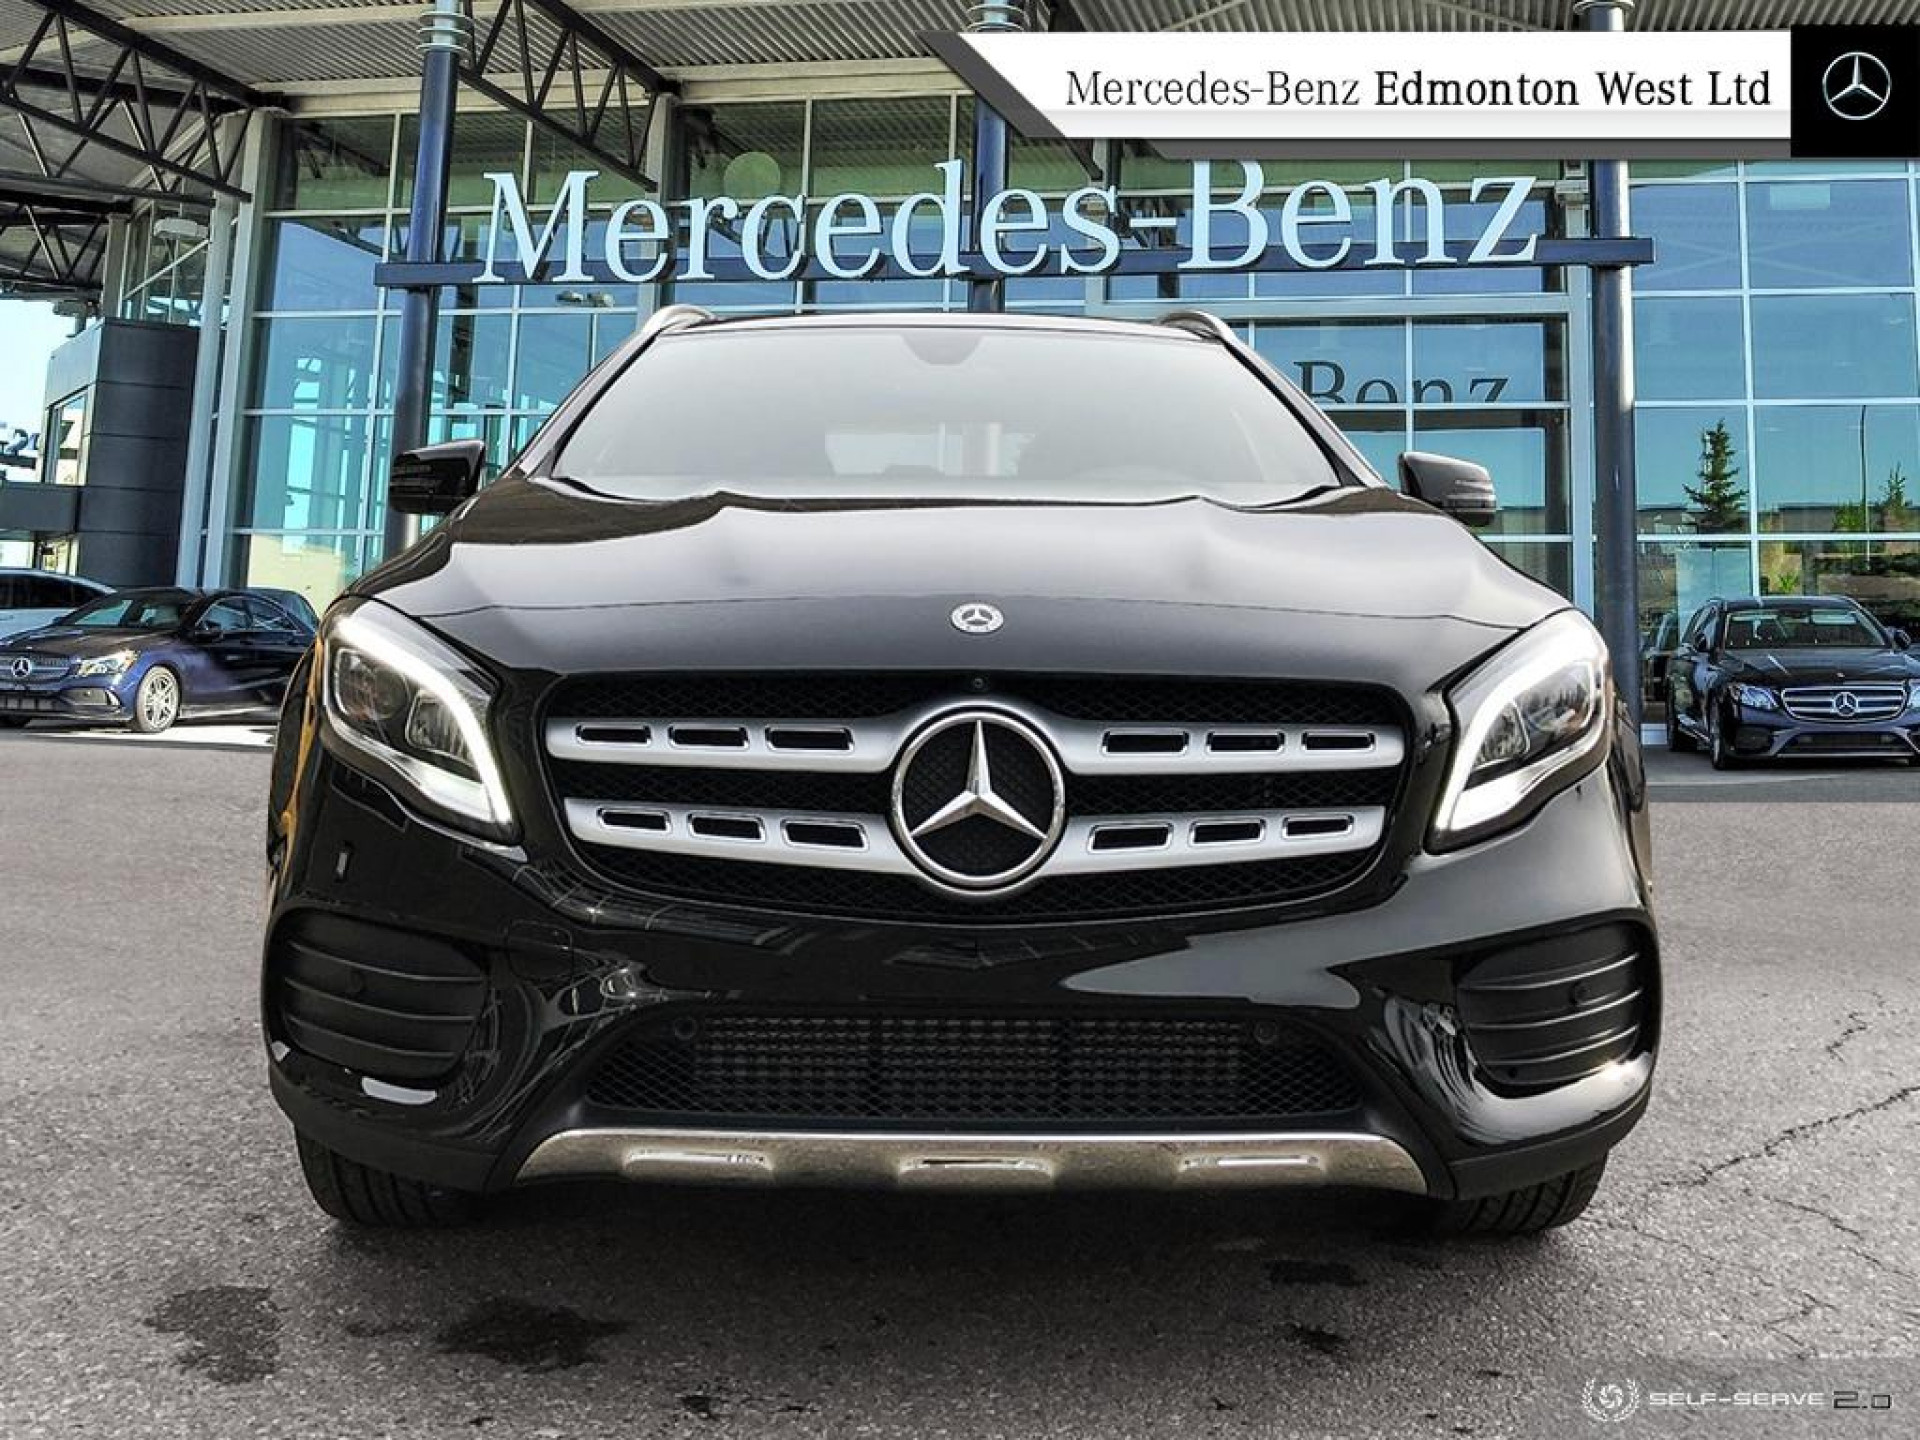 Pre-Owned 2020 Mercedes Benz GLA 250 4MATIC - Sport Package, Remote Start, Executive Demo